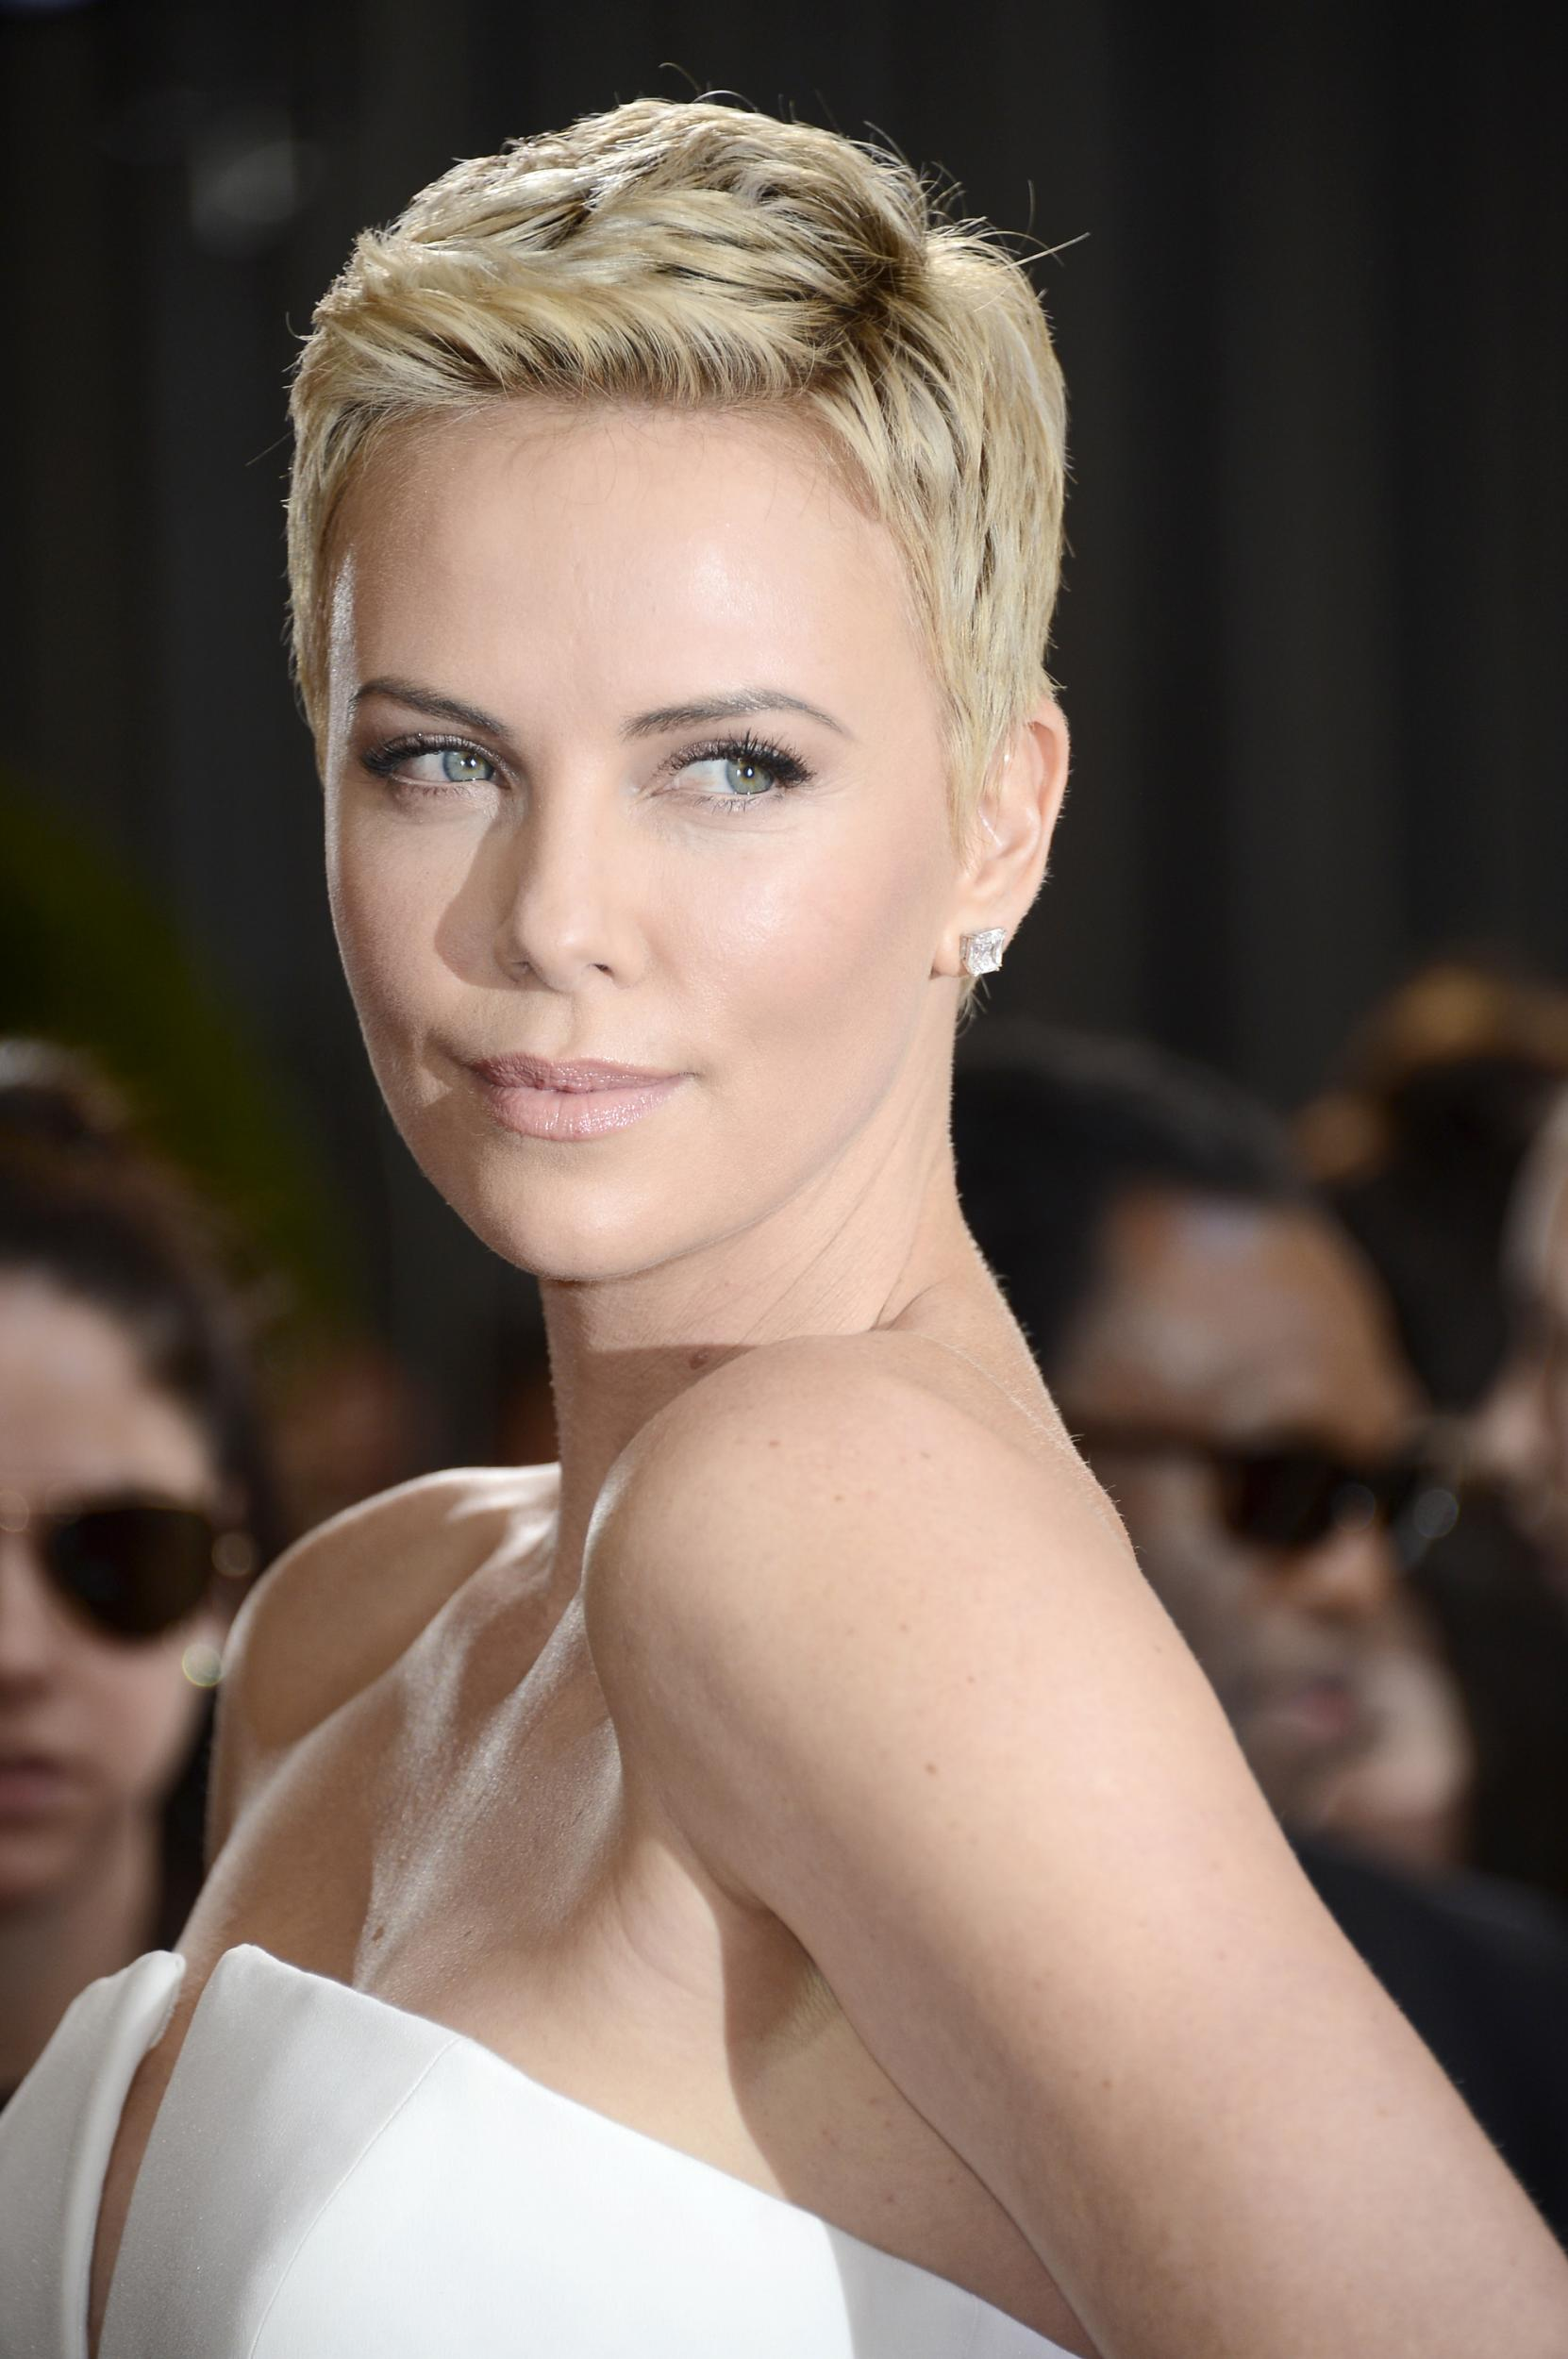 The history of the pixie cut hairstyle | The Independent